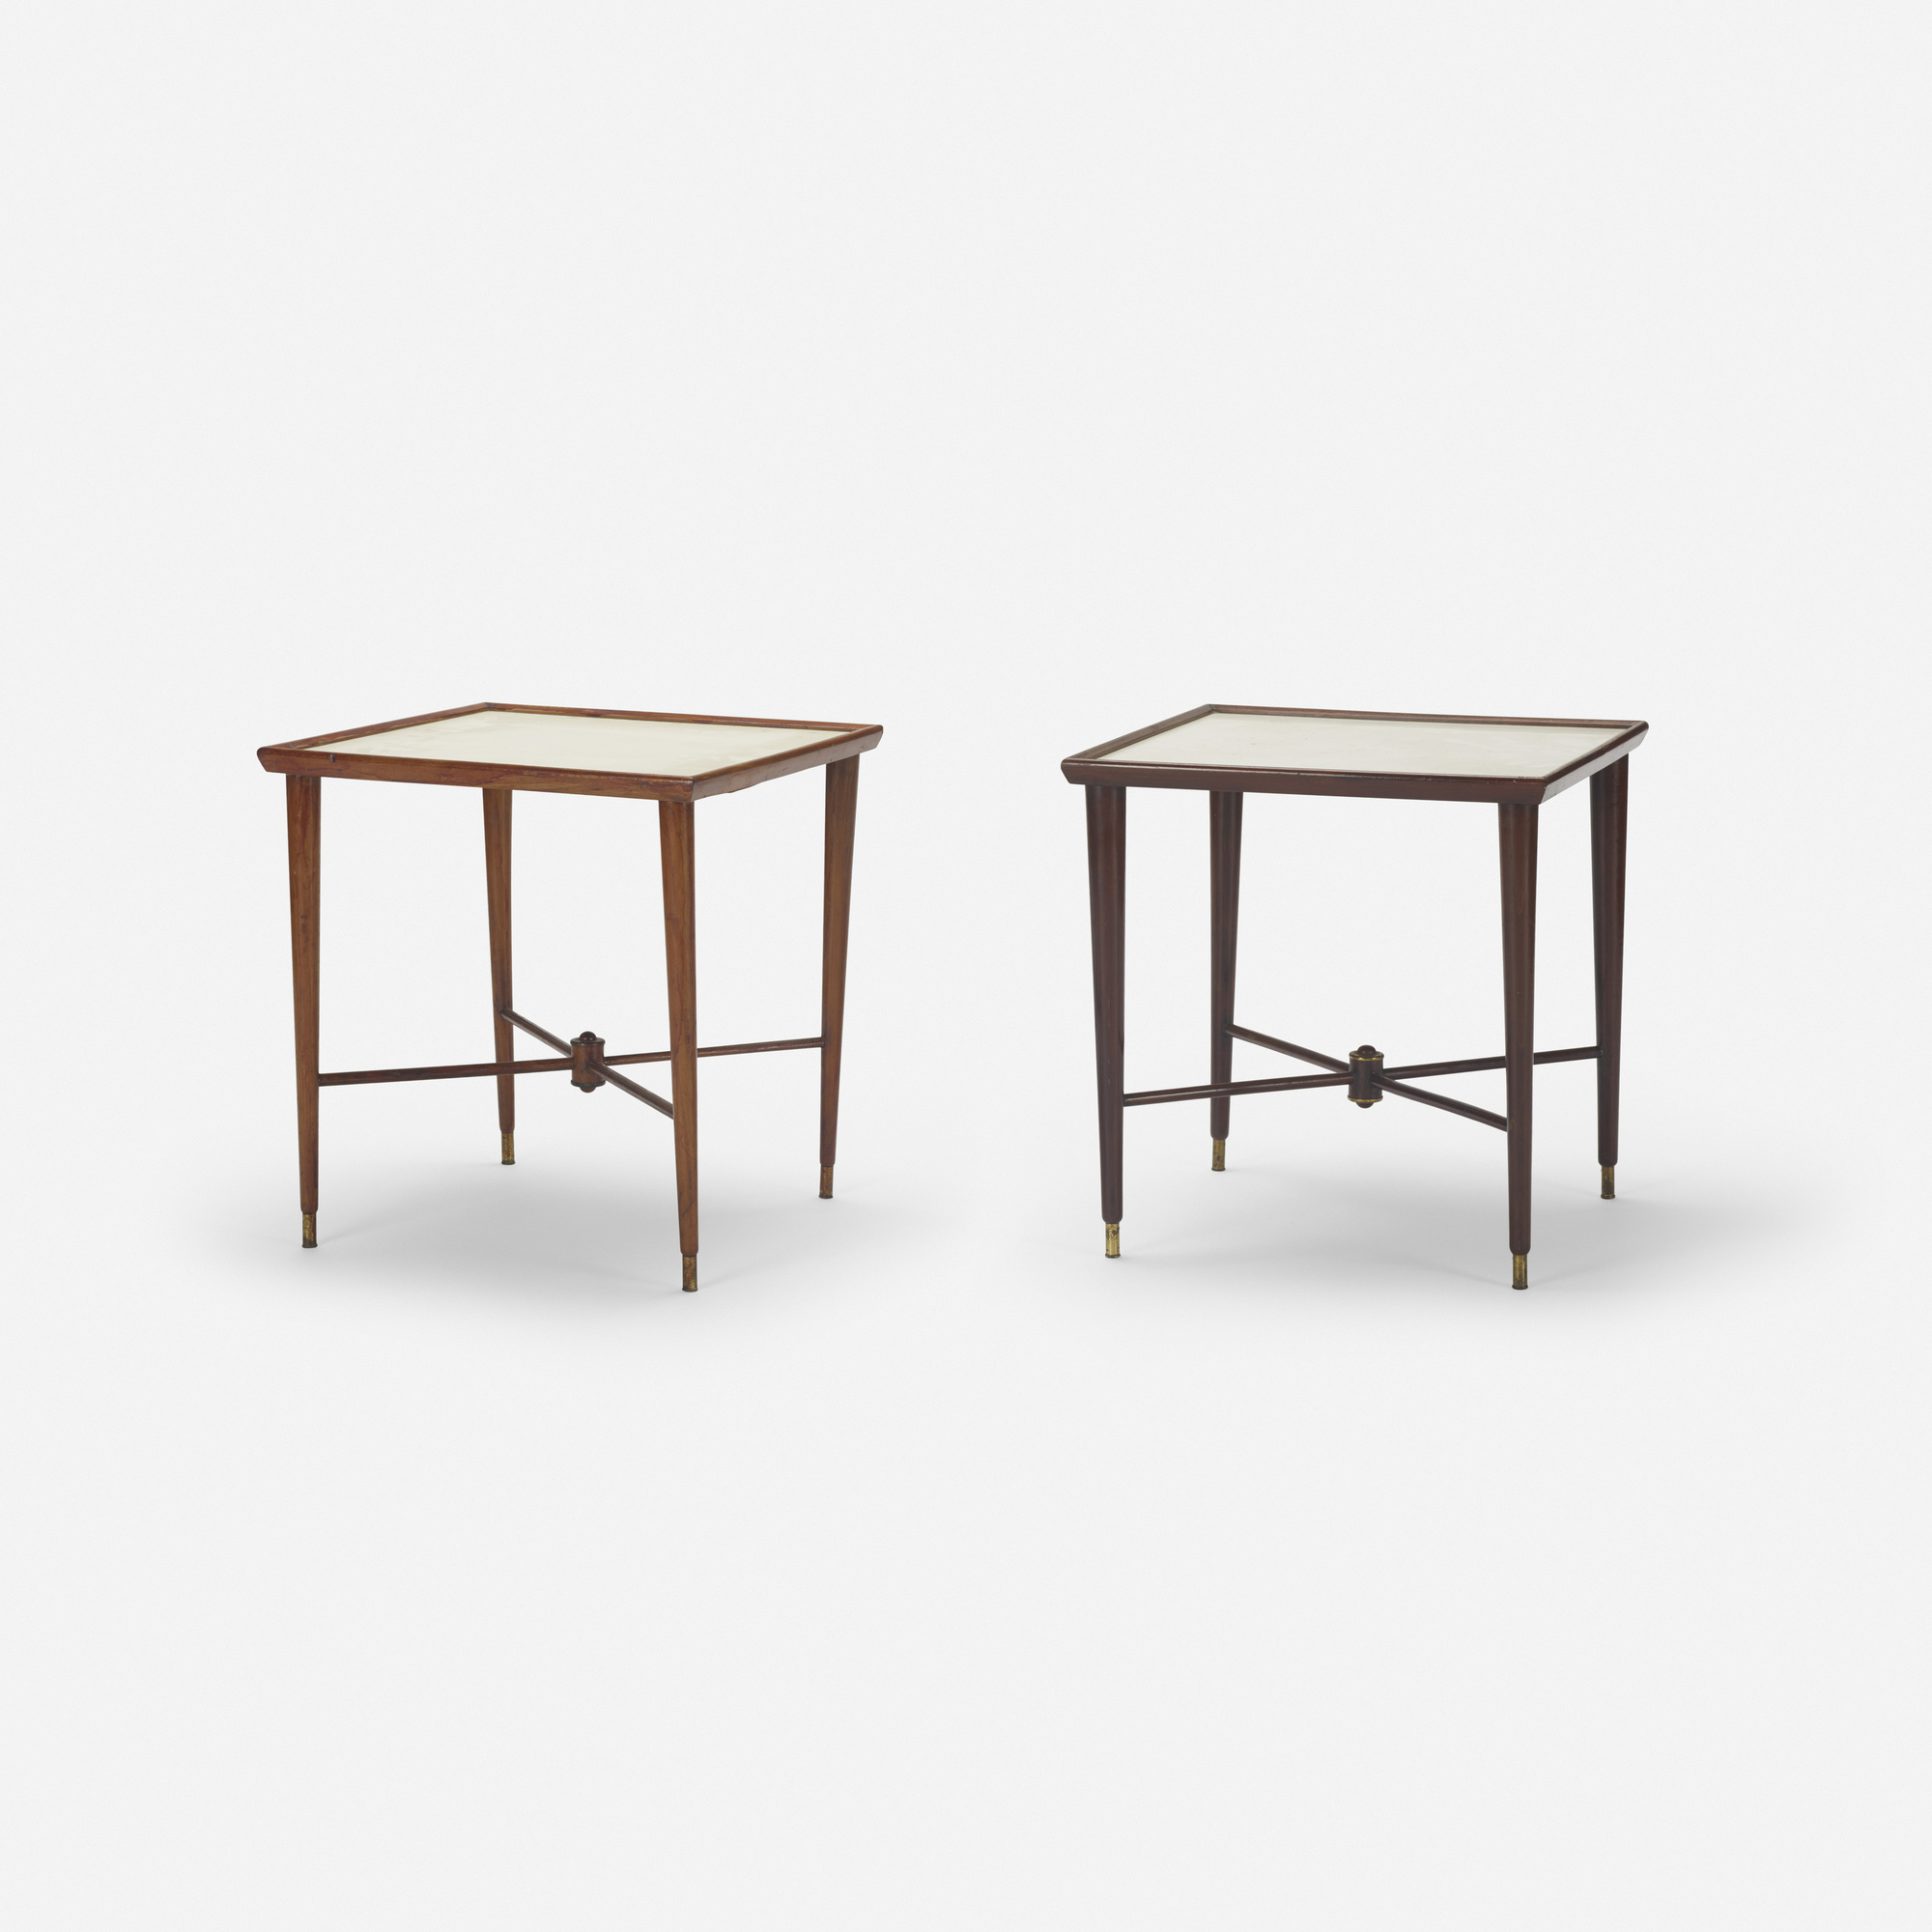 226: Brazilian / occasional tables, pair (1 of 2)